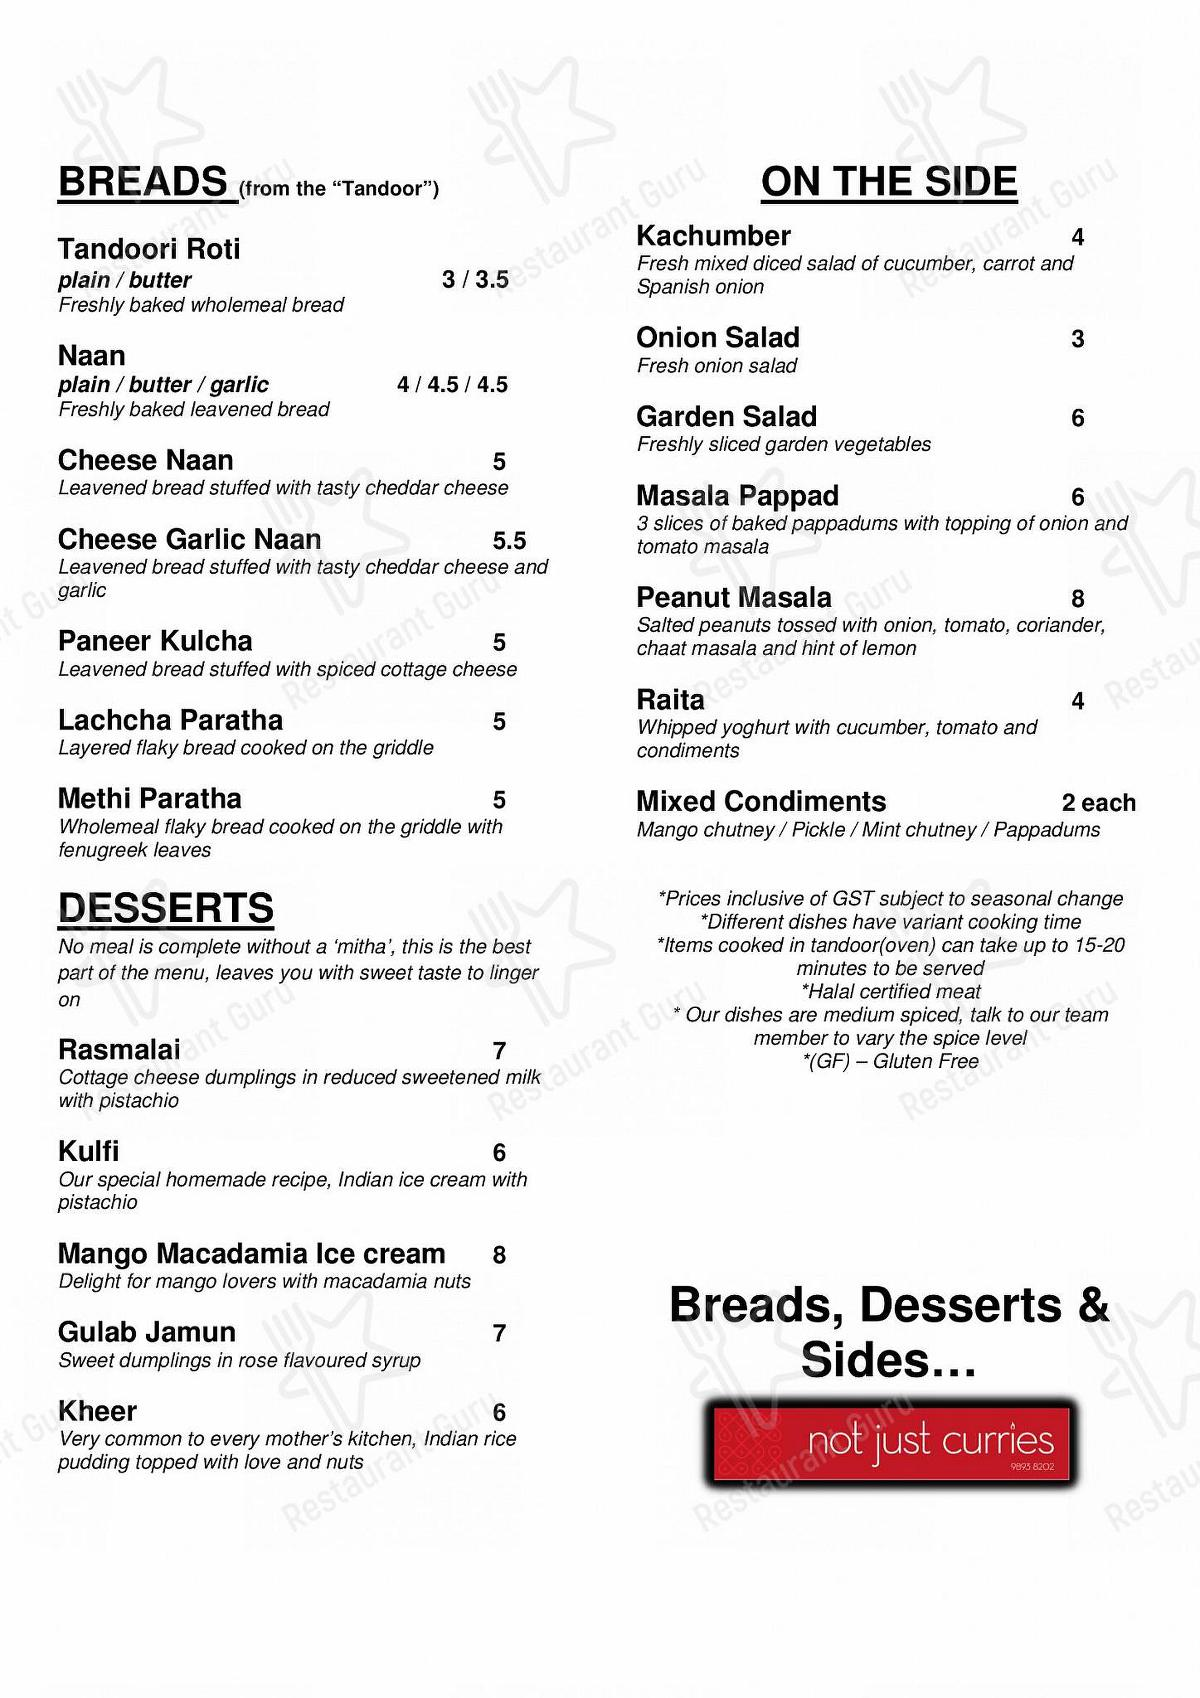 not just curries menu - dishes and beverages